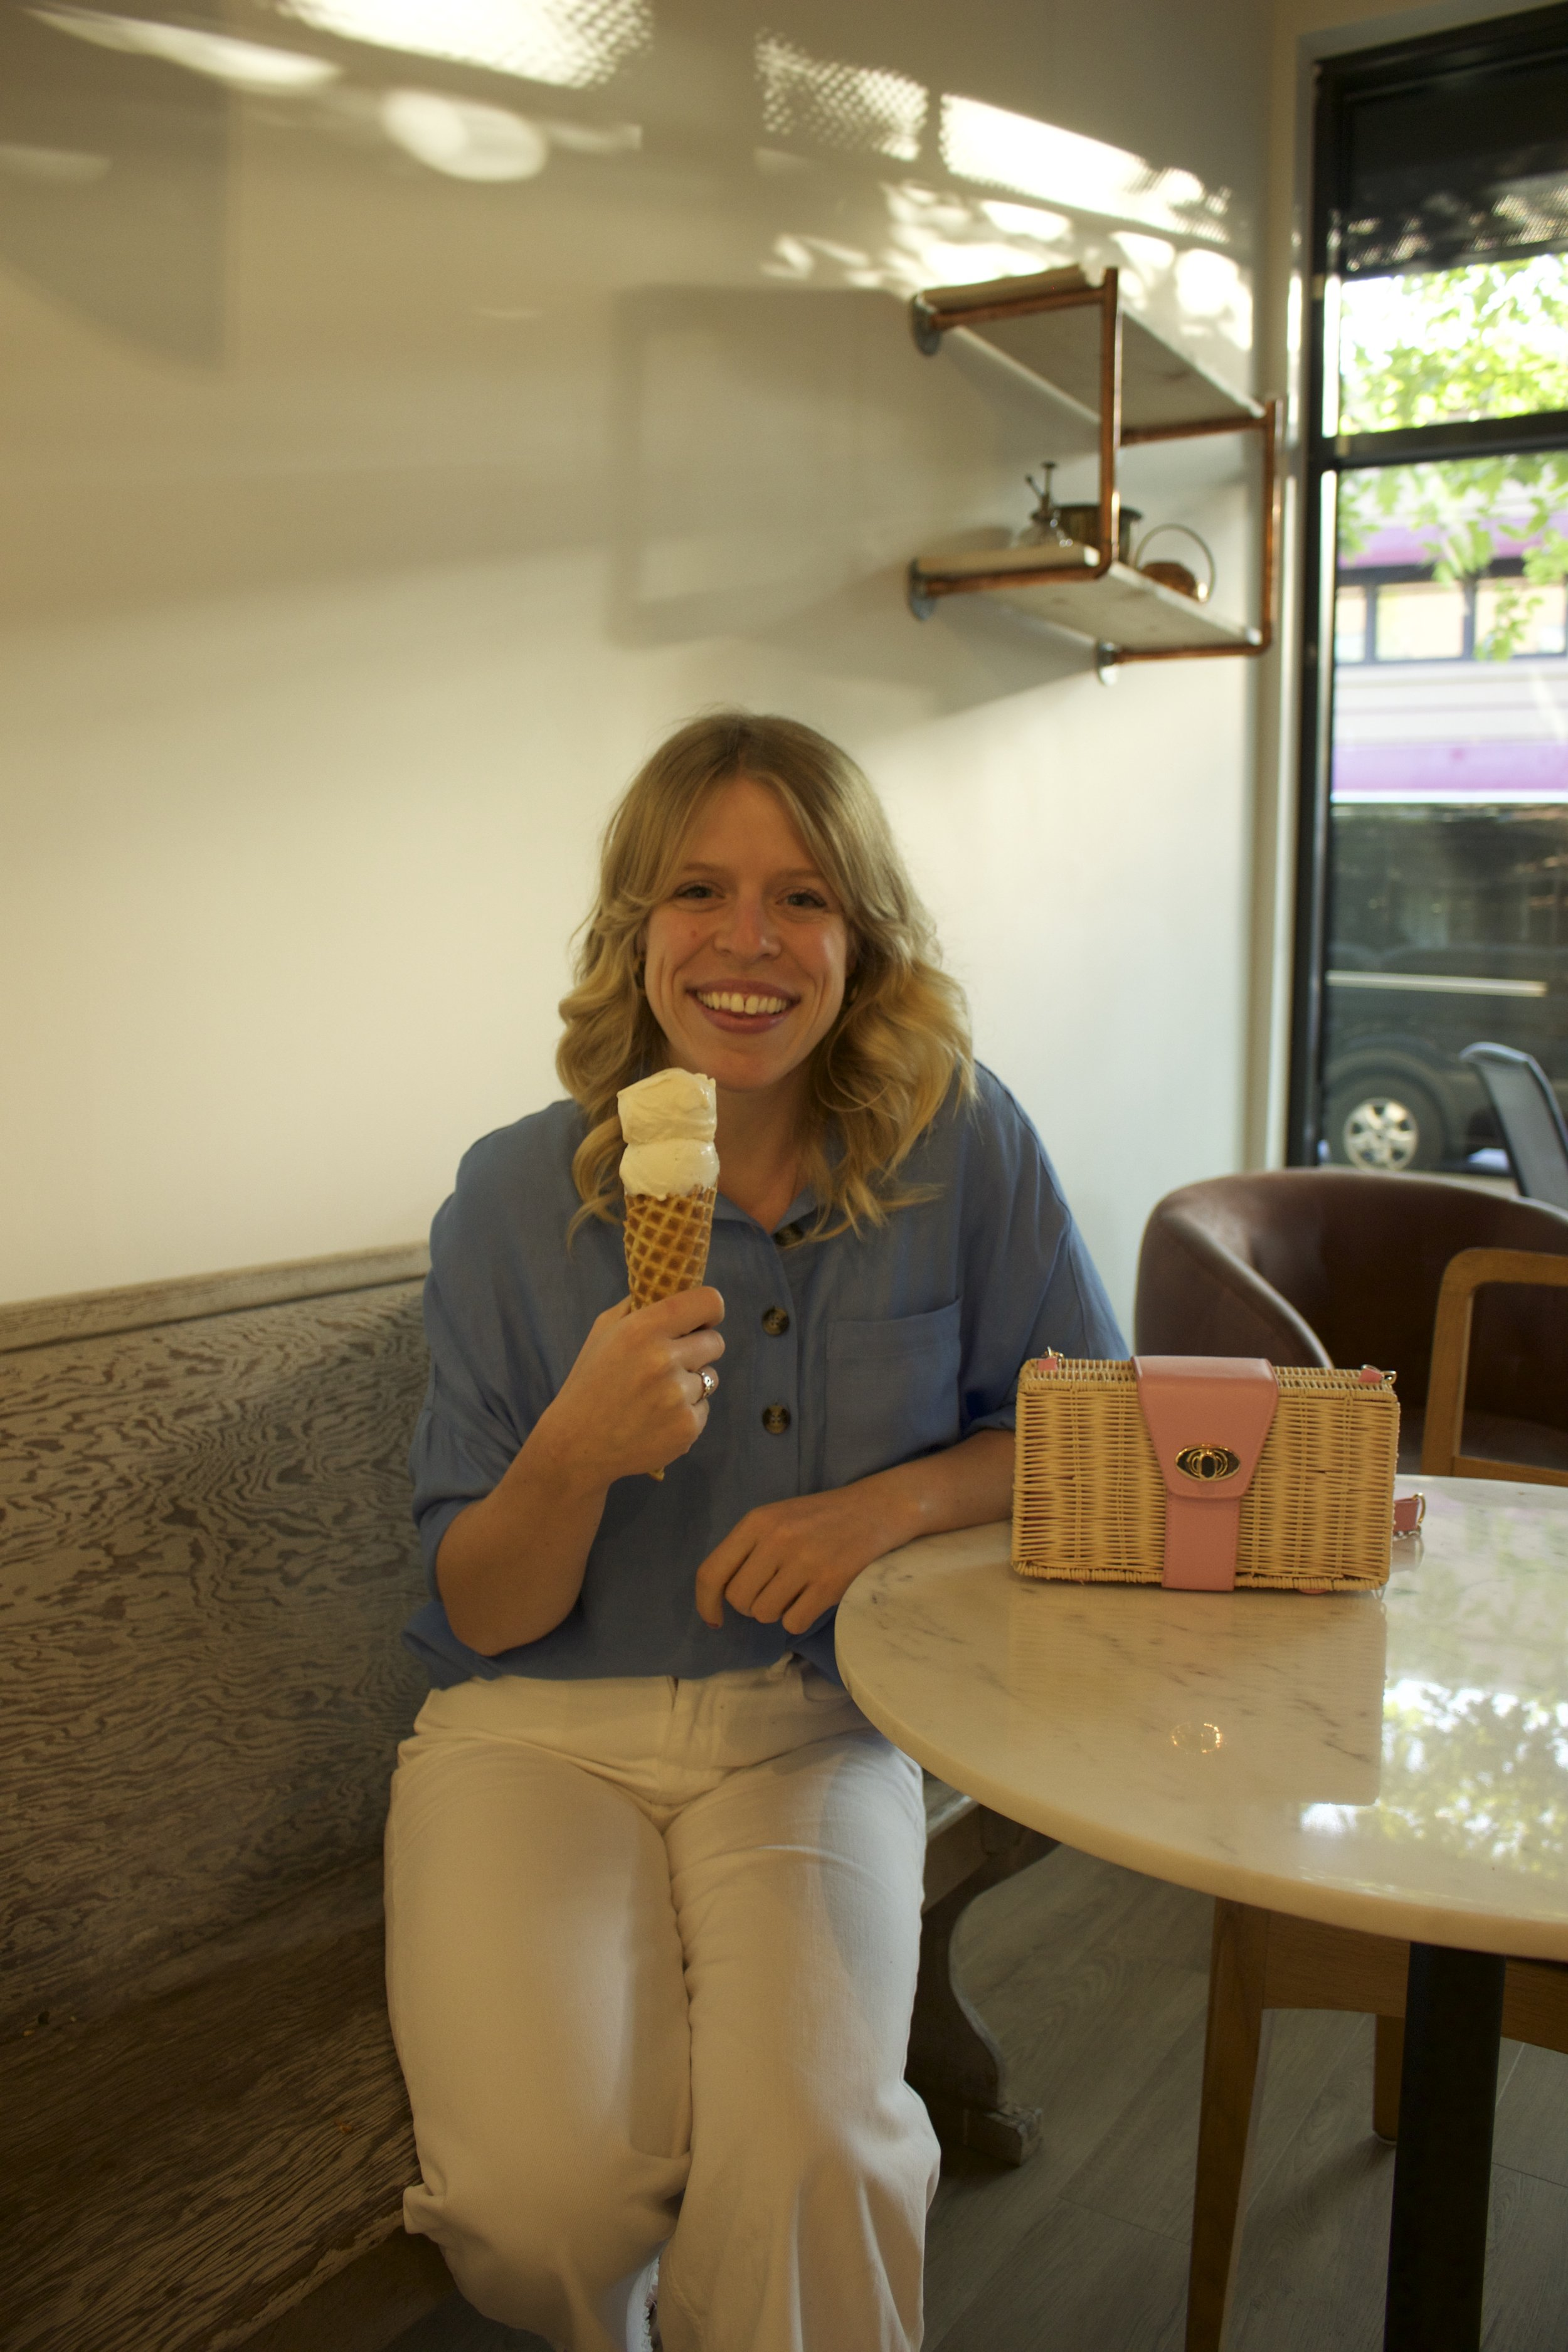 I could live in this ice cream shop!